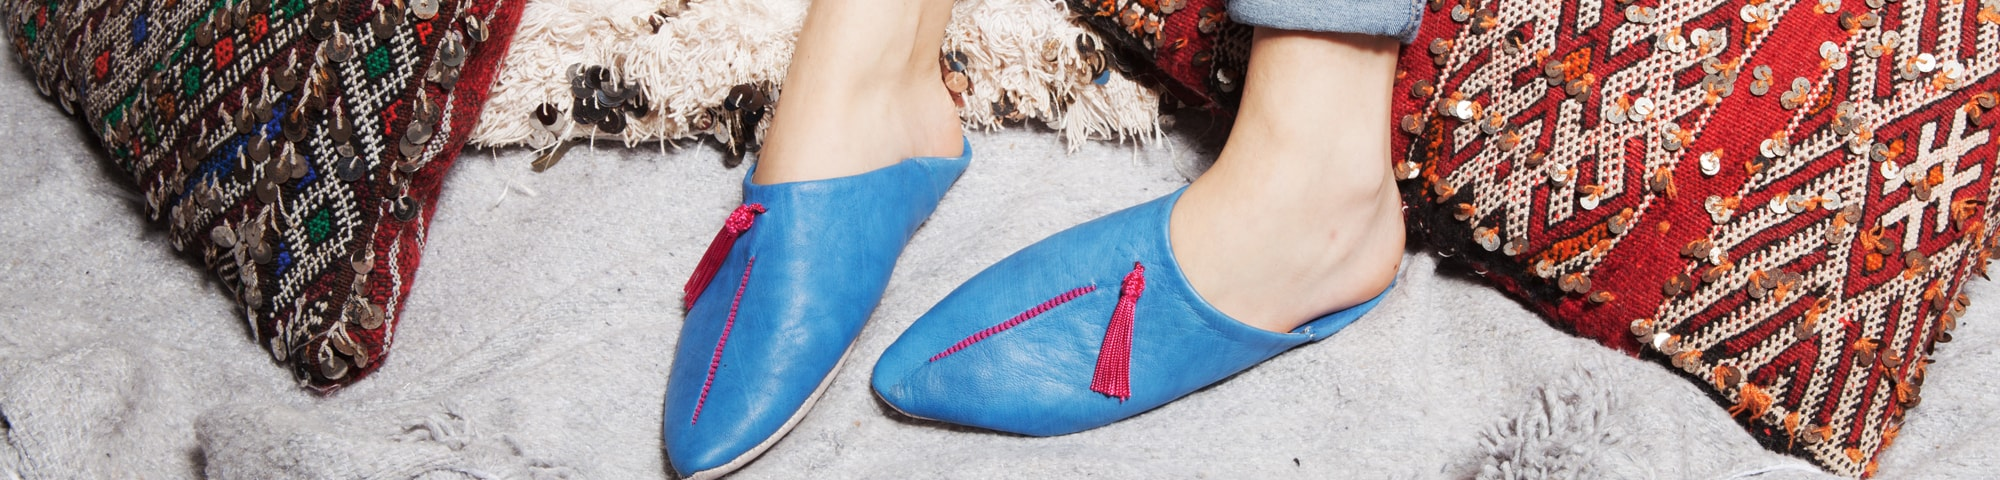 MOROCCAN LEATHER FUNKY BABOUCHE  All Sizes BLUE /& GREY HAND CRAFTED